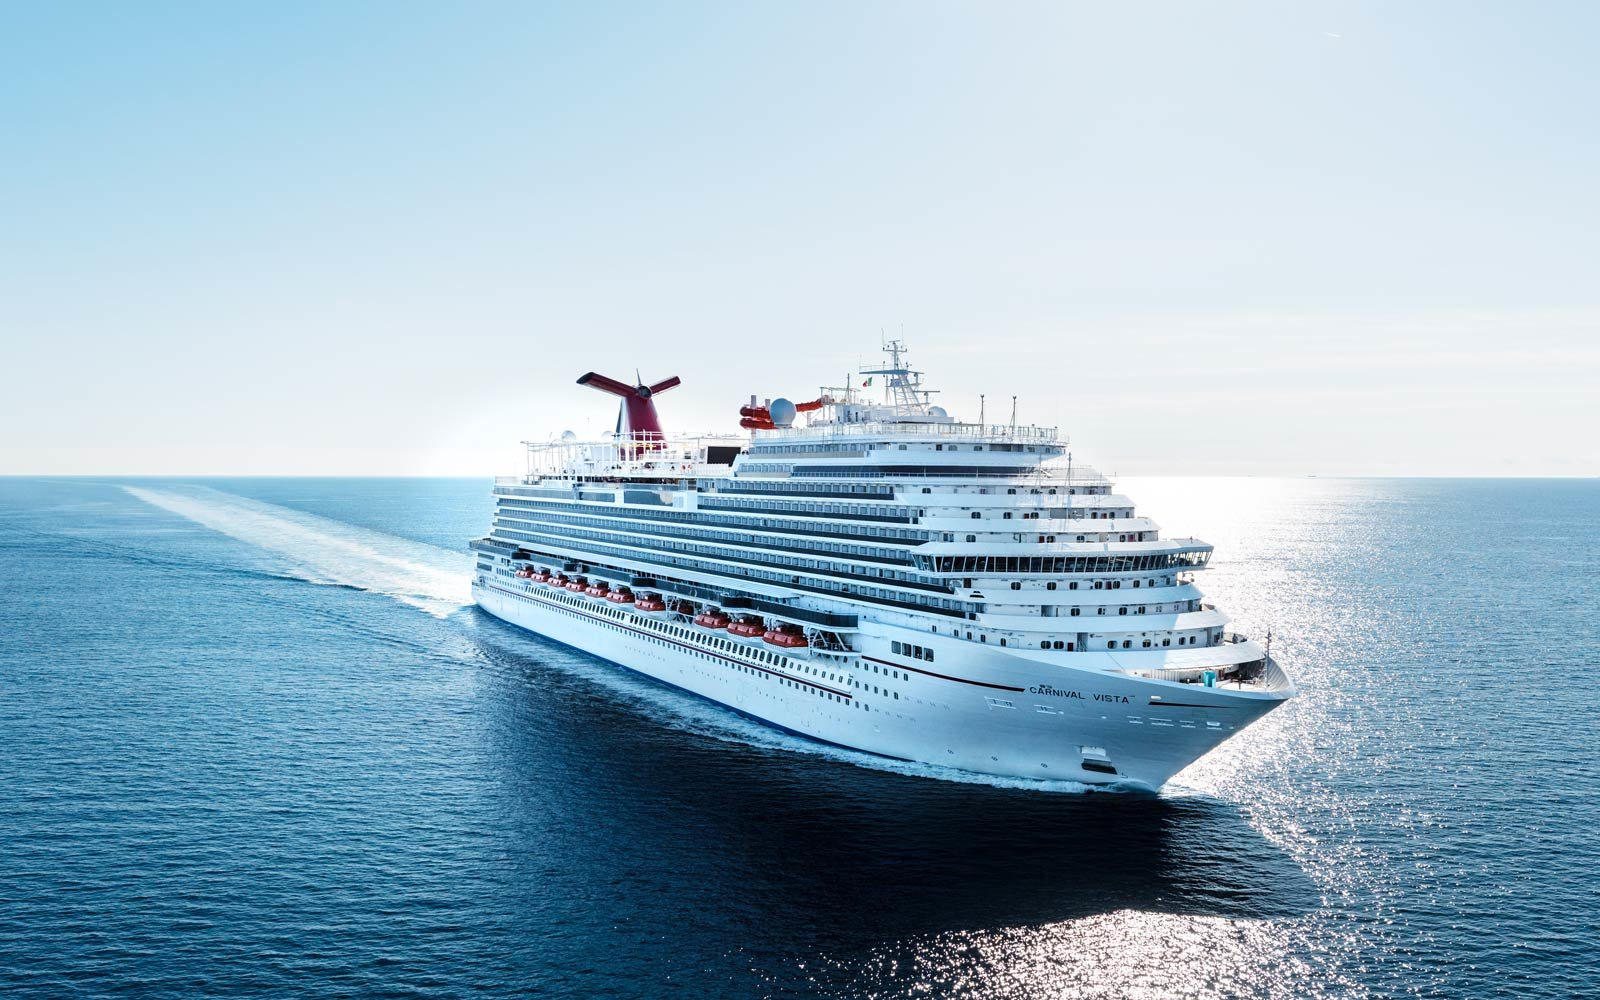 The Worlds Best Megaship Ocean Cruise Lines Travel Leisure - Cruise ship images